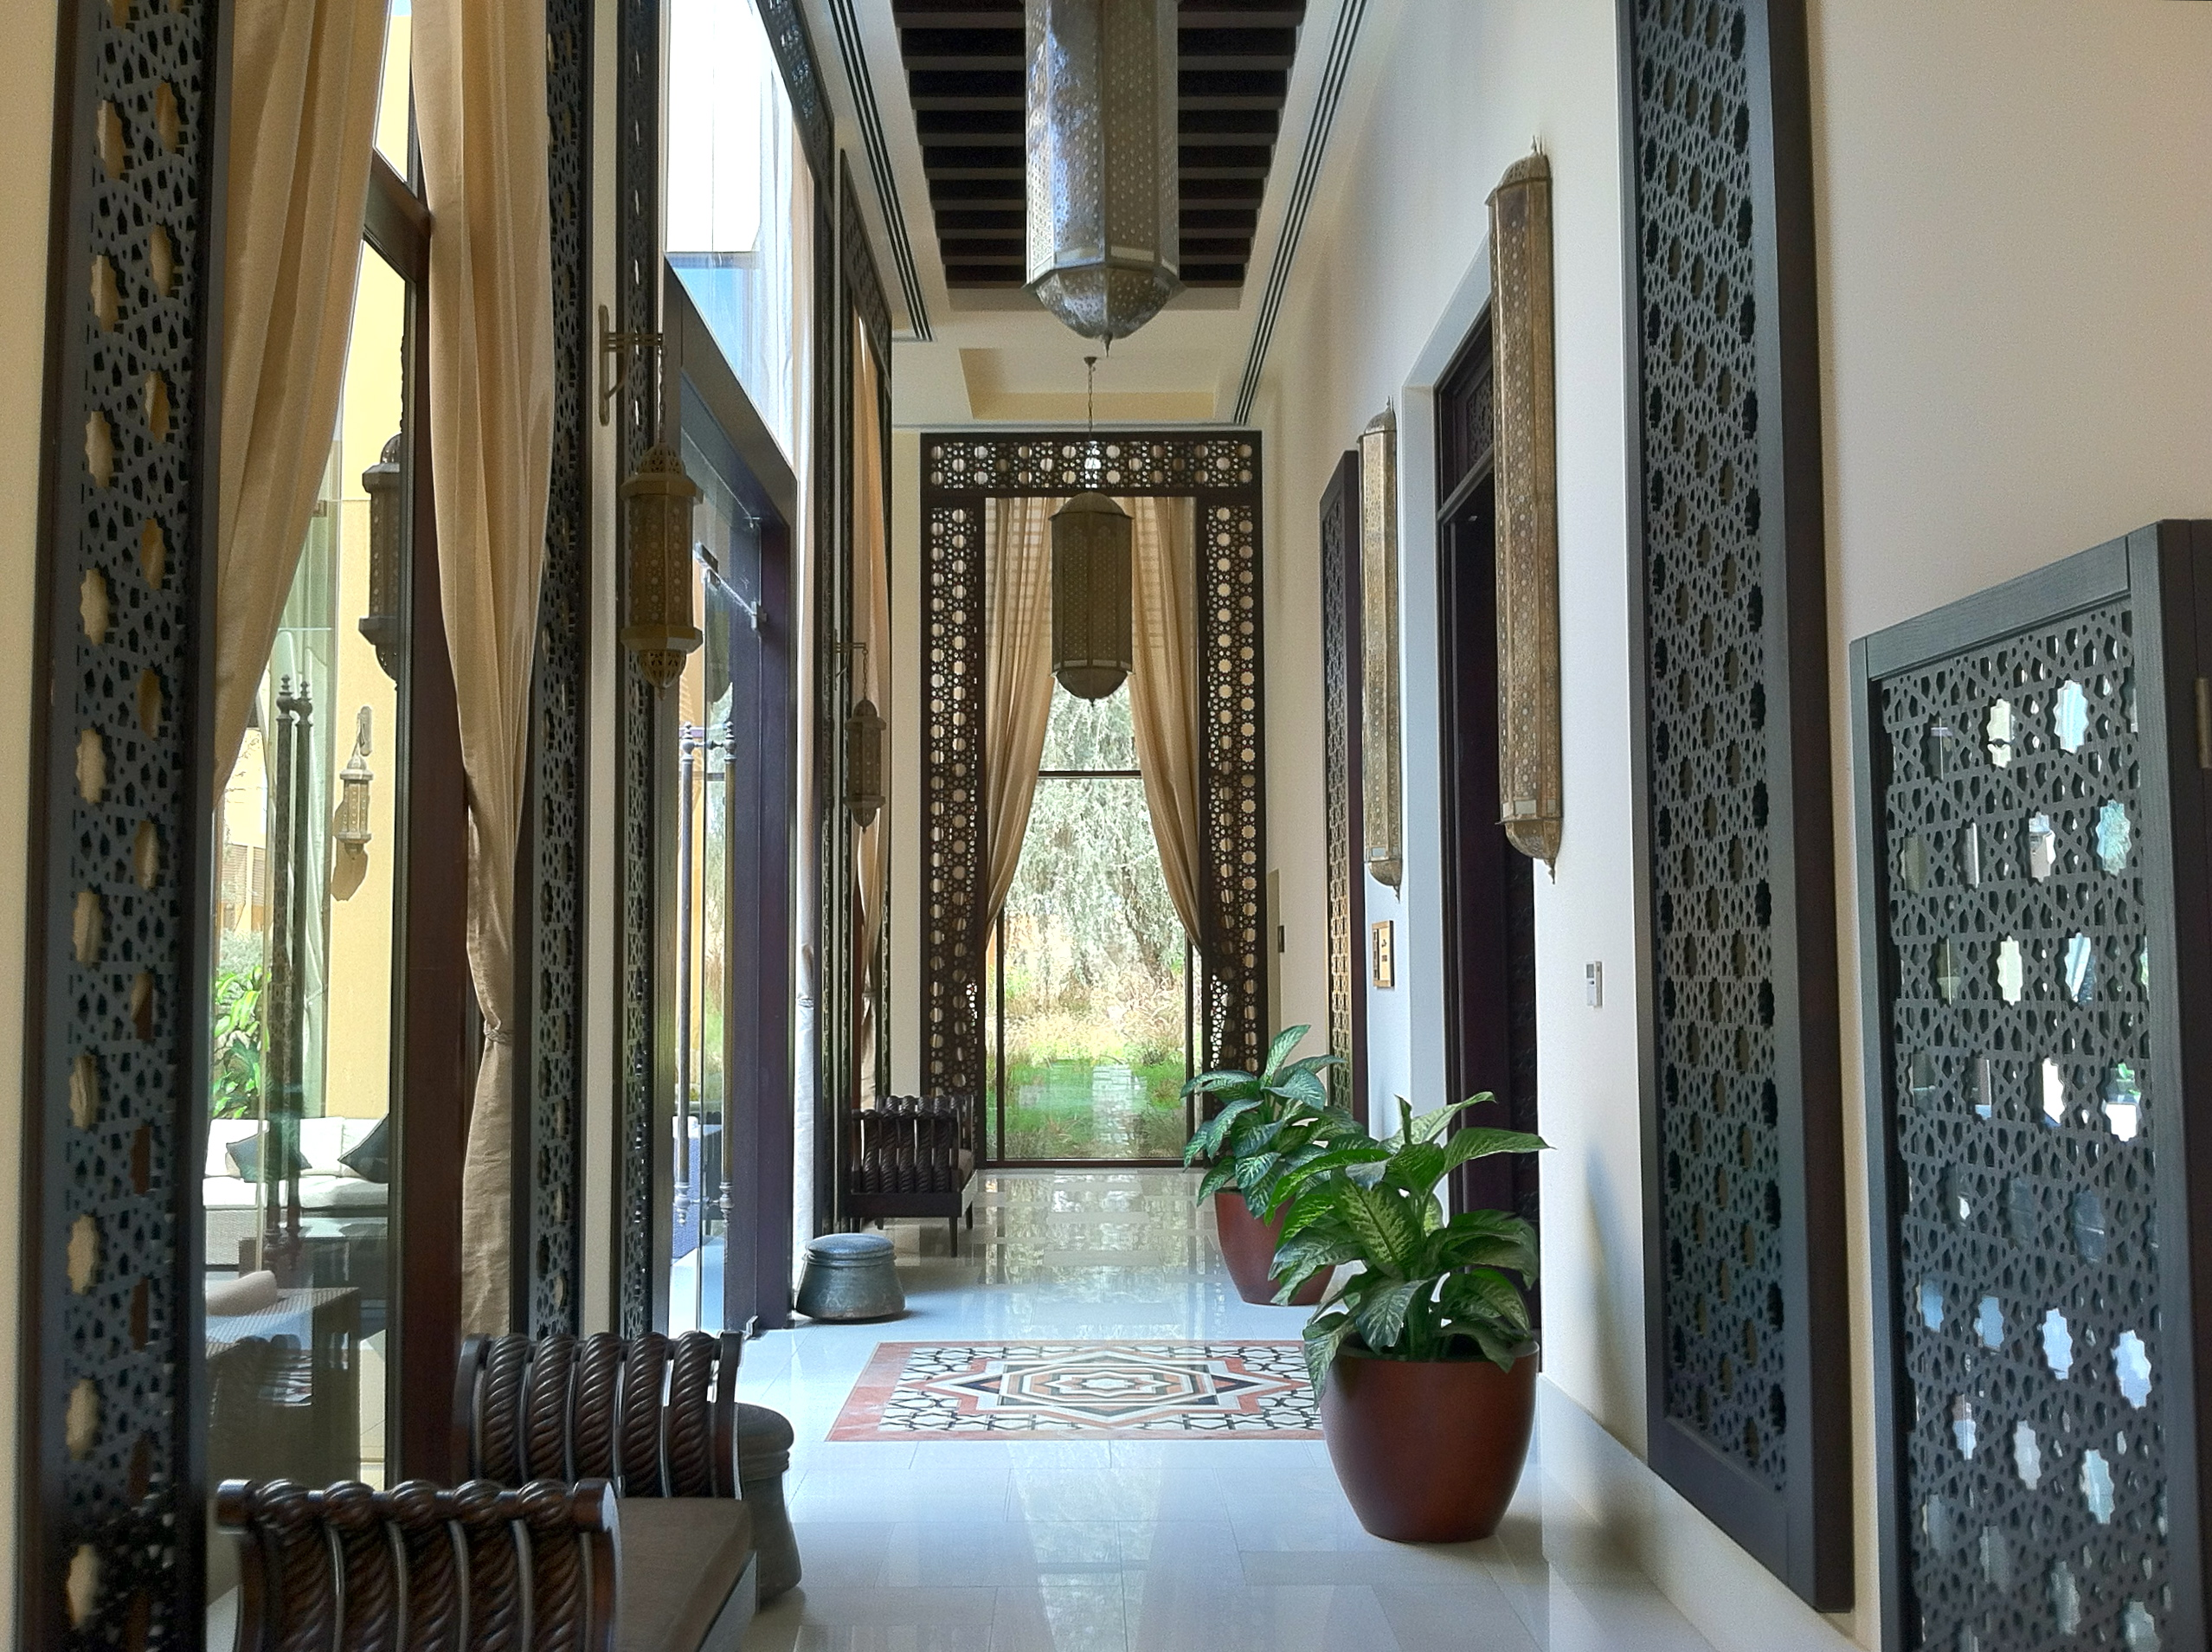 The contemporary adaptation of traditional Arabic architecture is a tribute to the heritage of the region.